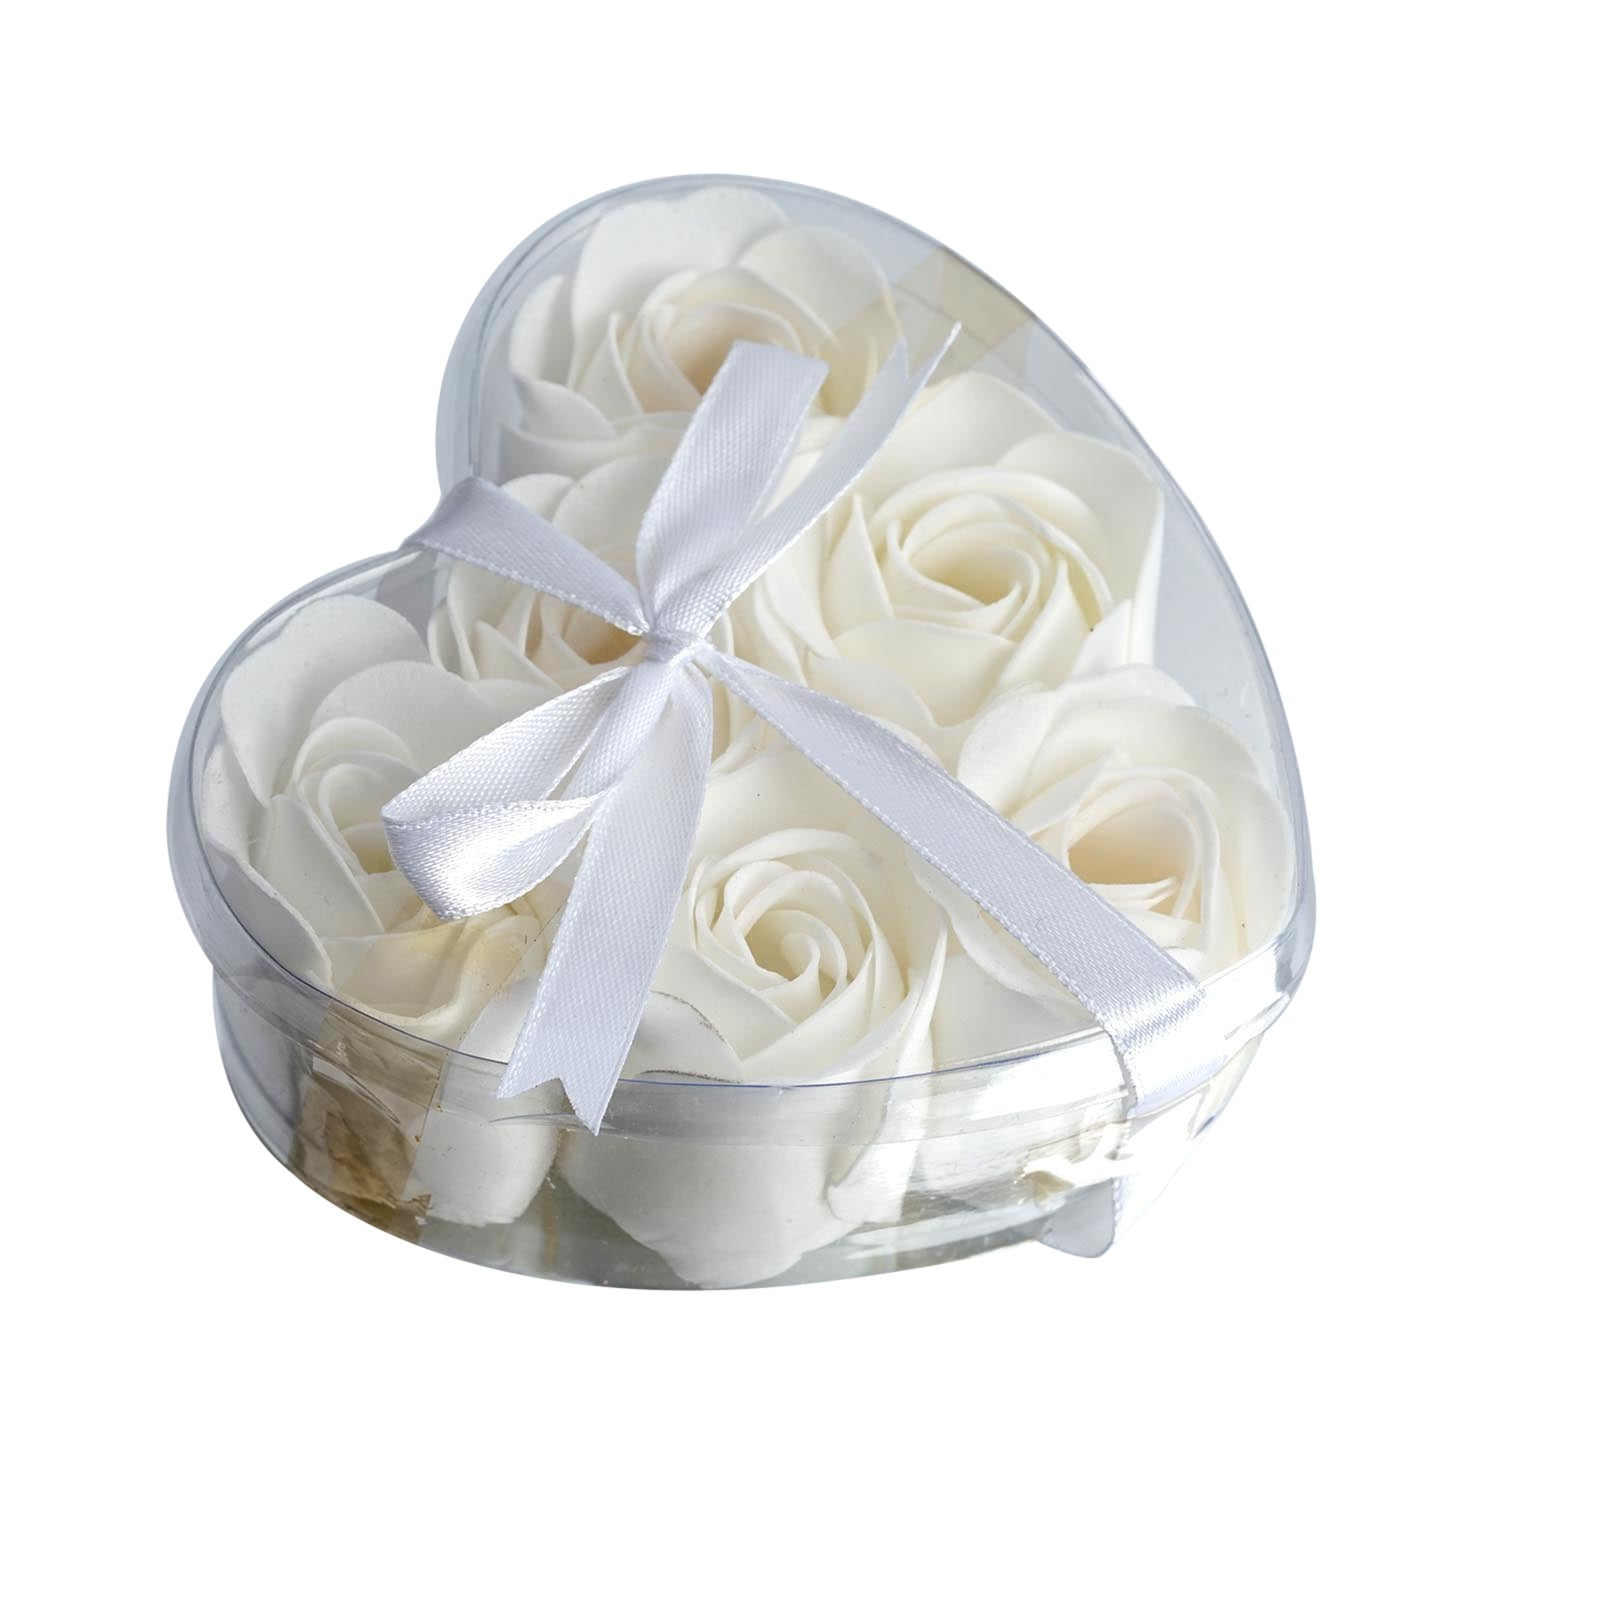 6 Pack White Scented Rose Flower Bath Shower Soap | eFavorMart